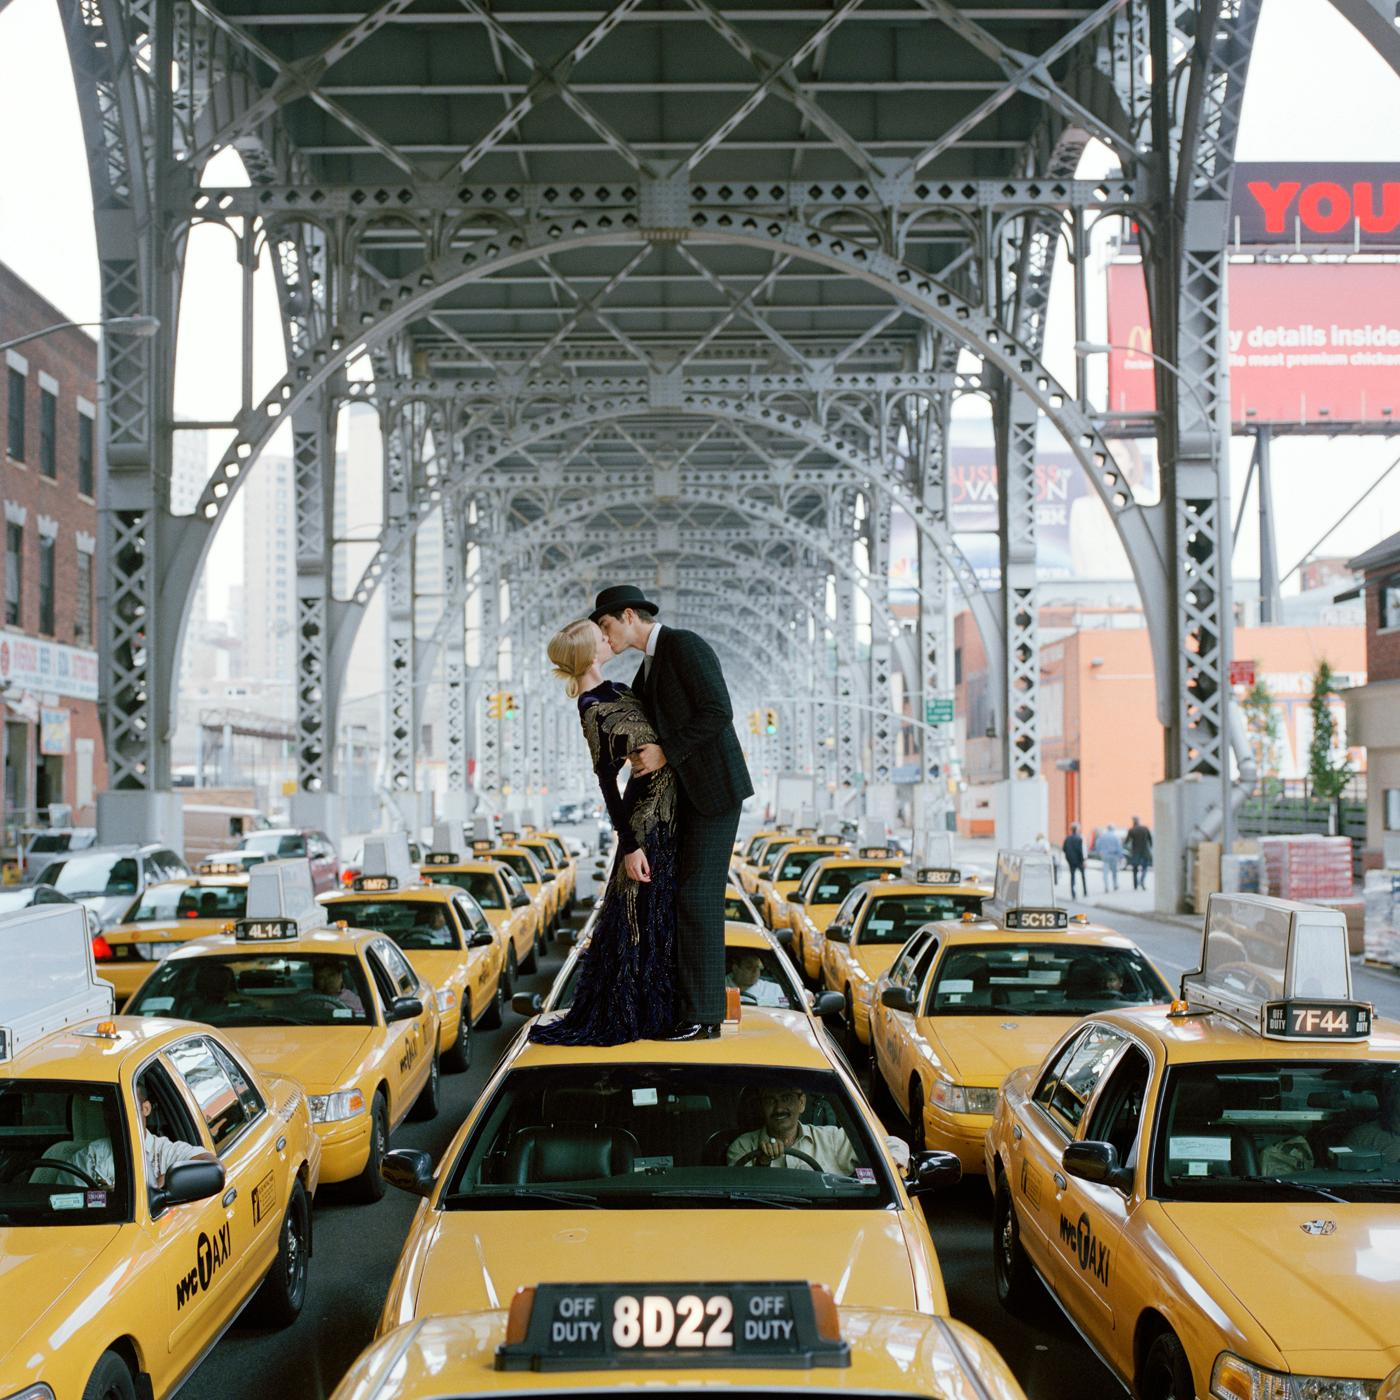 Edythe and Andrew Kissing on Taxis- Framed photograph by Rodney Smith